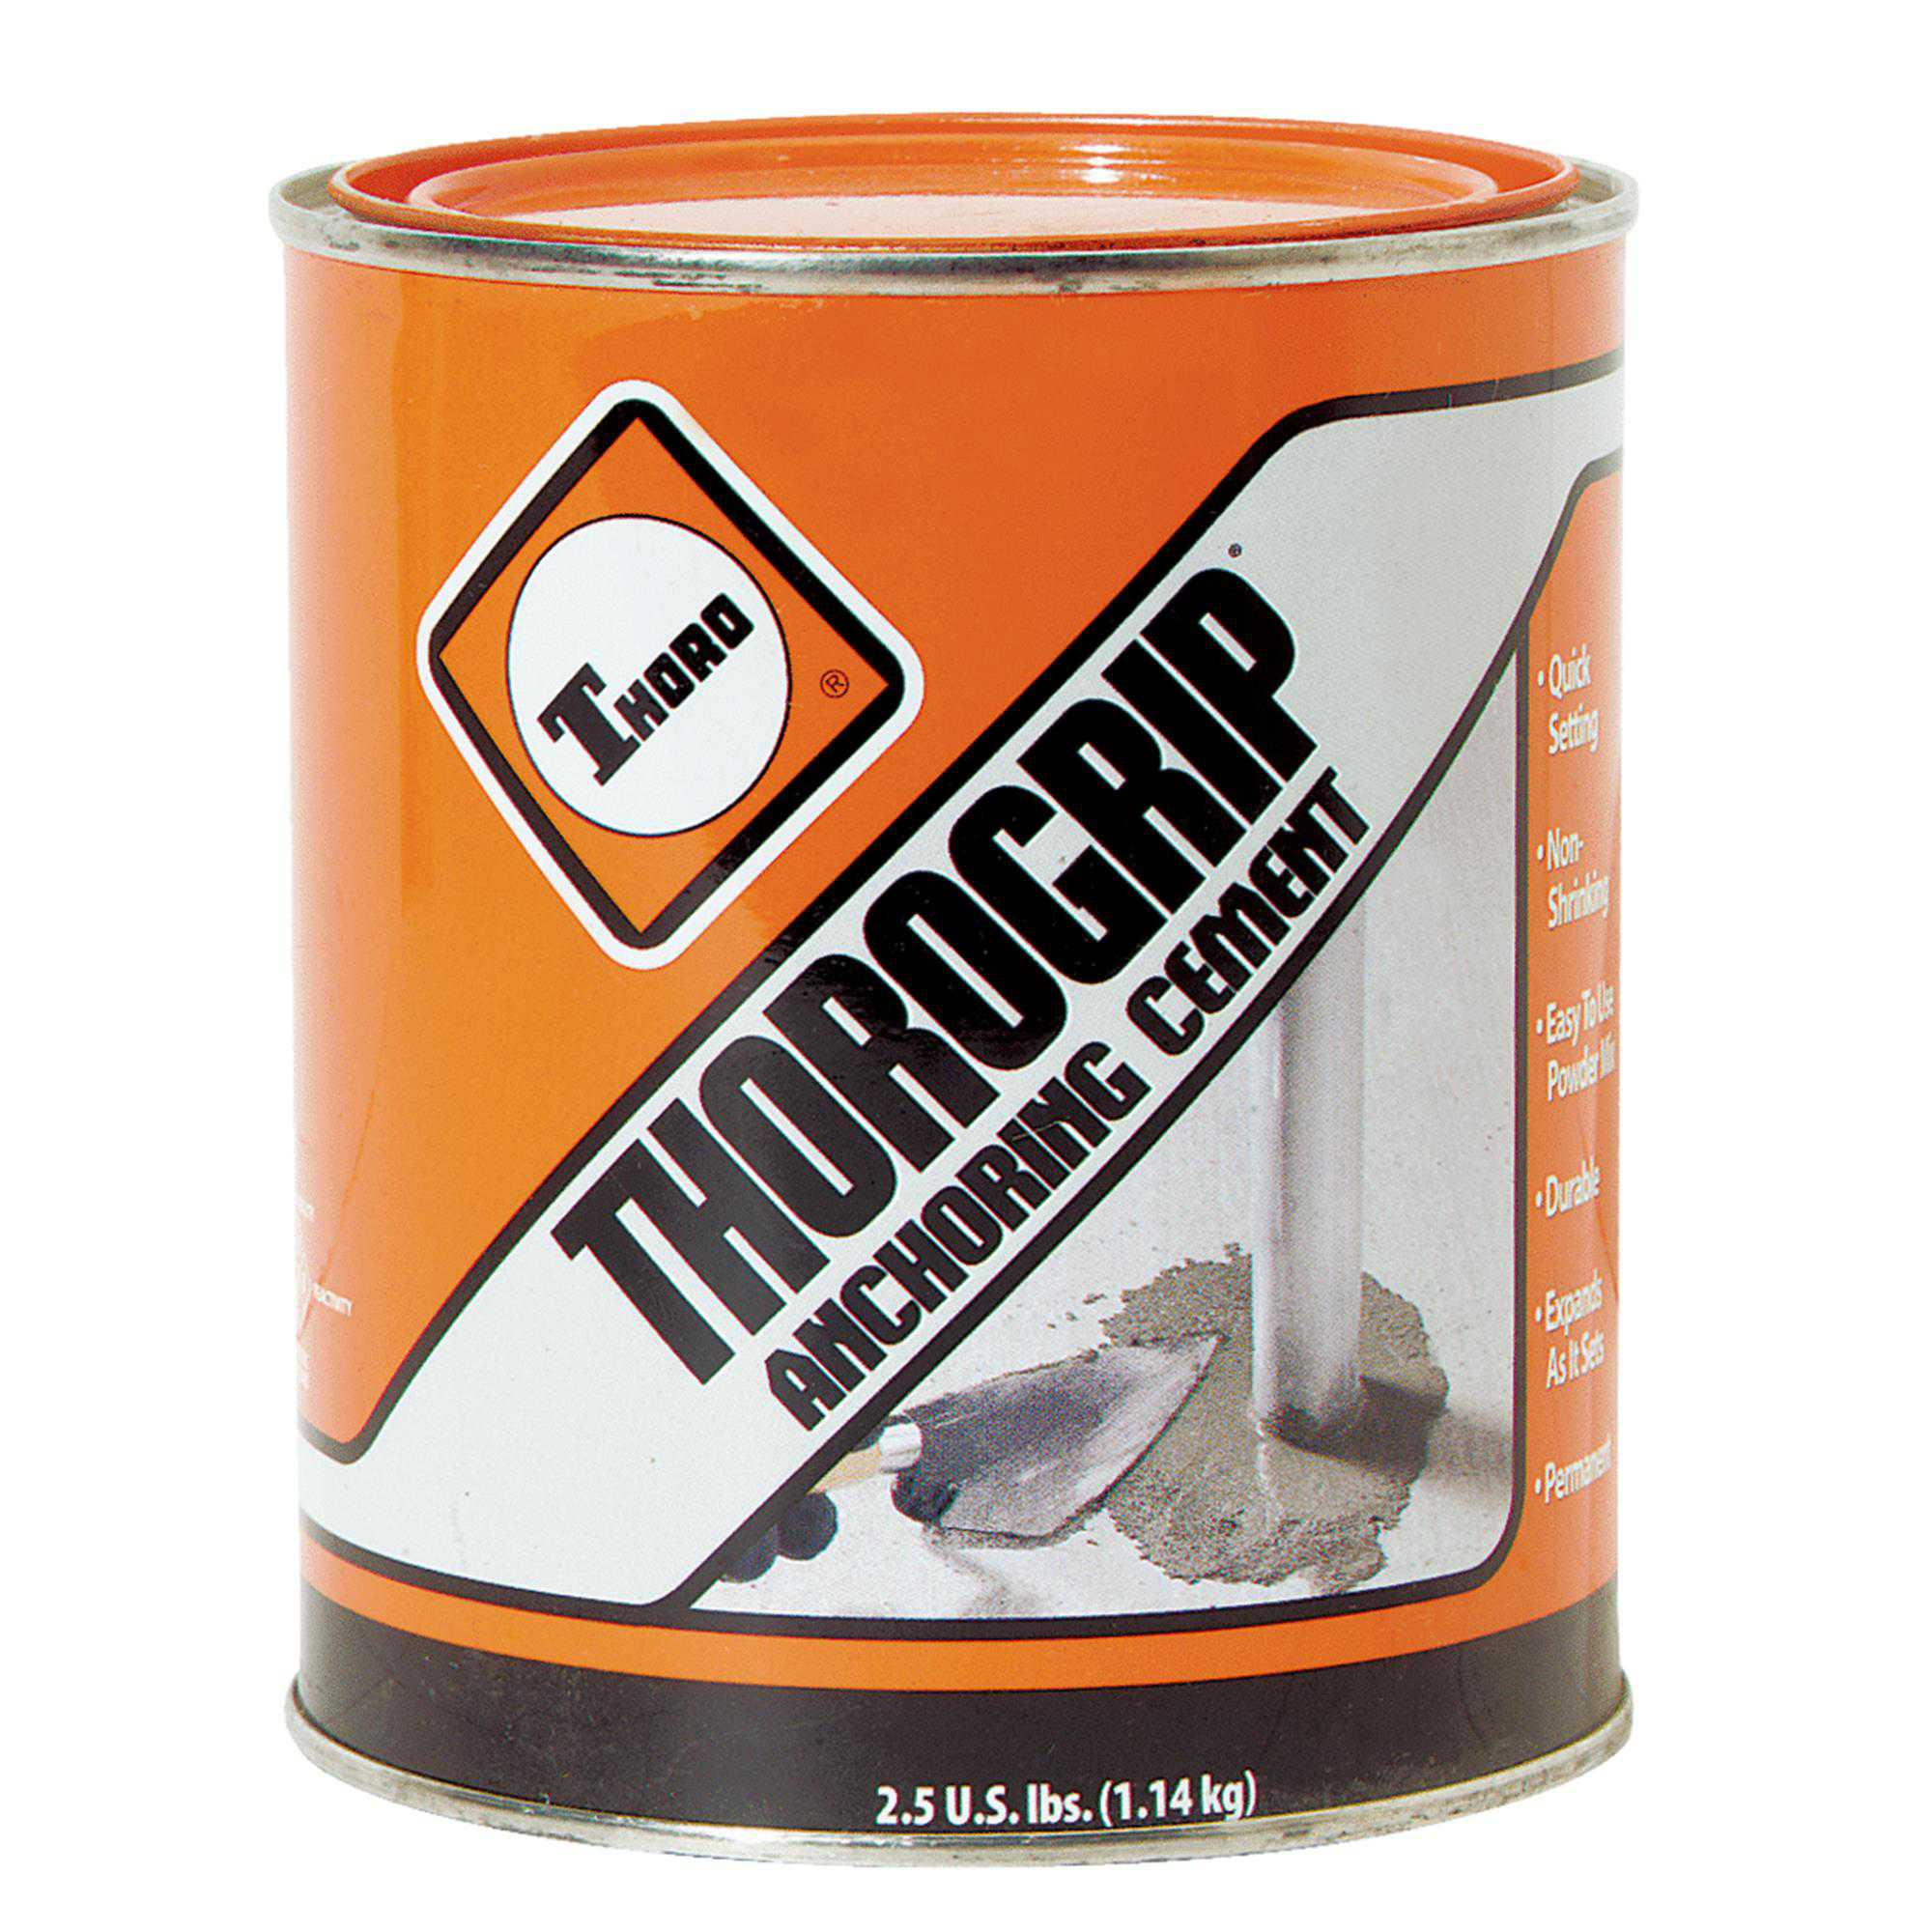 Thorogrip Hydraulic Cement